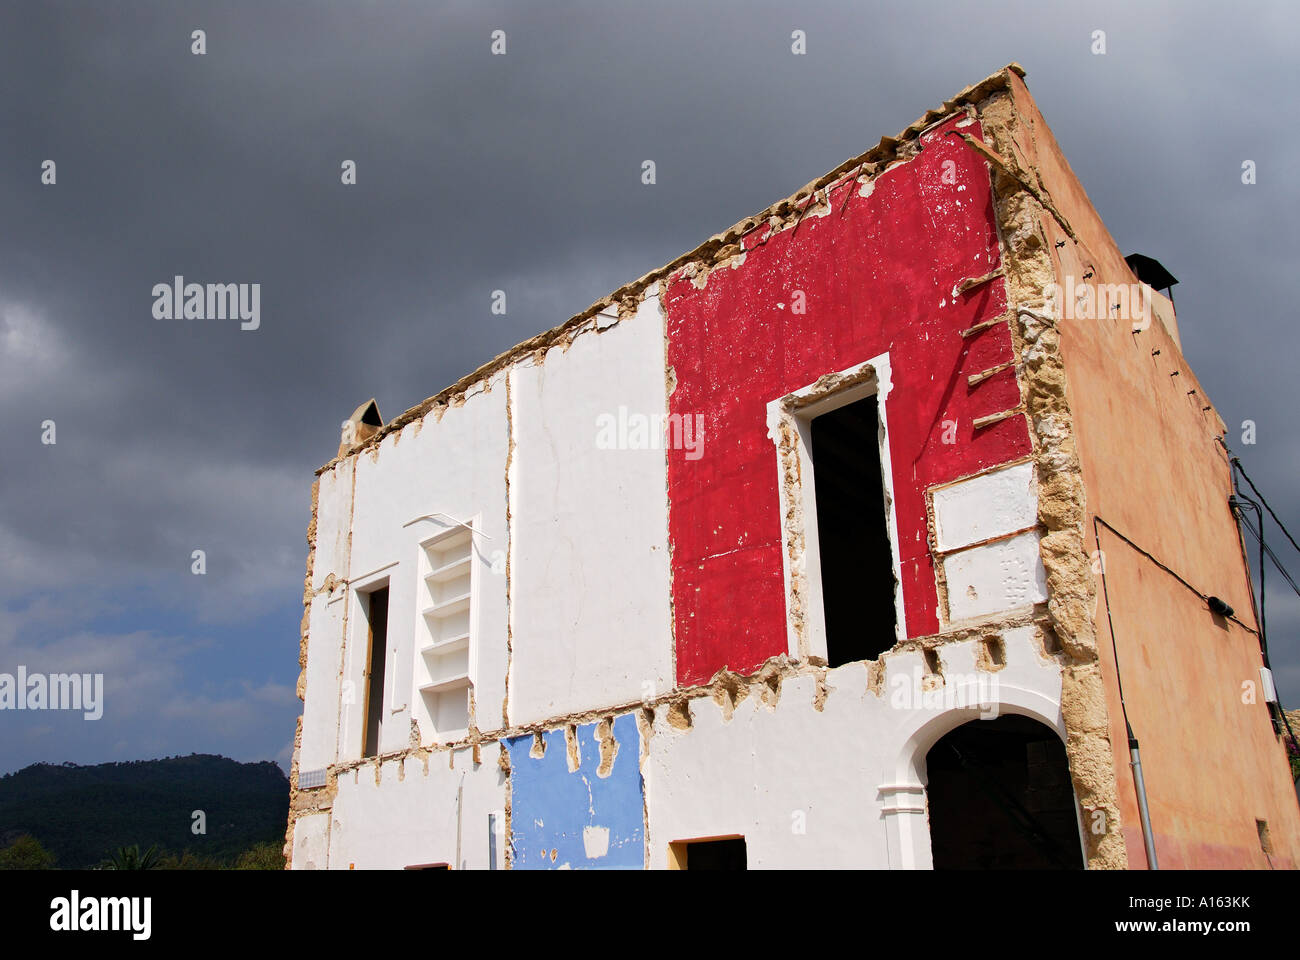 'Remaining half of demolished house against stormy sky, ^Mallorca'. - Stock Image